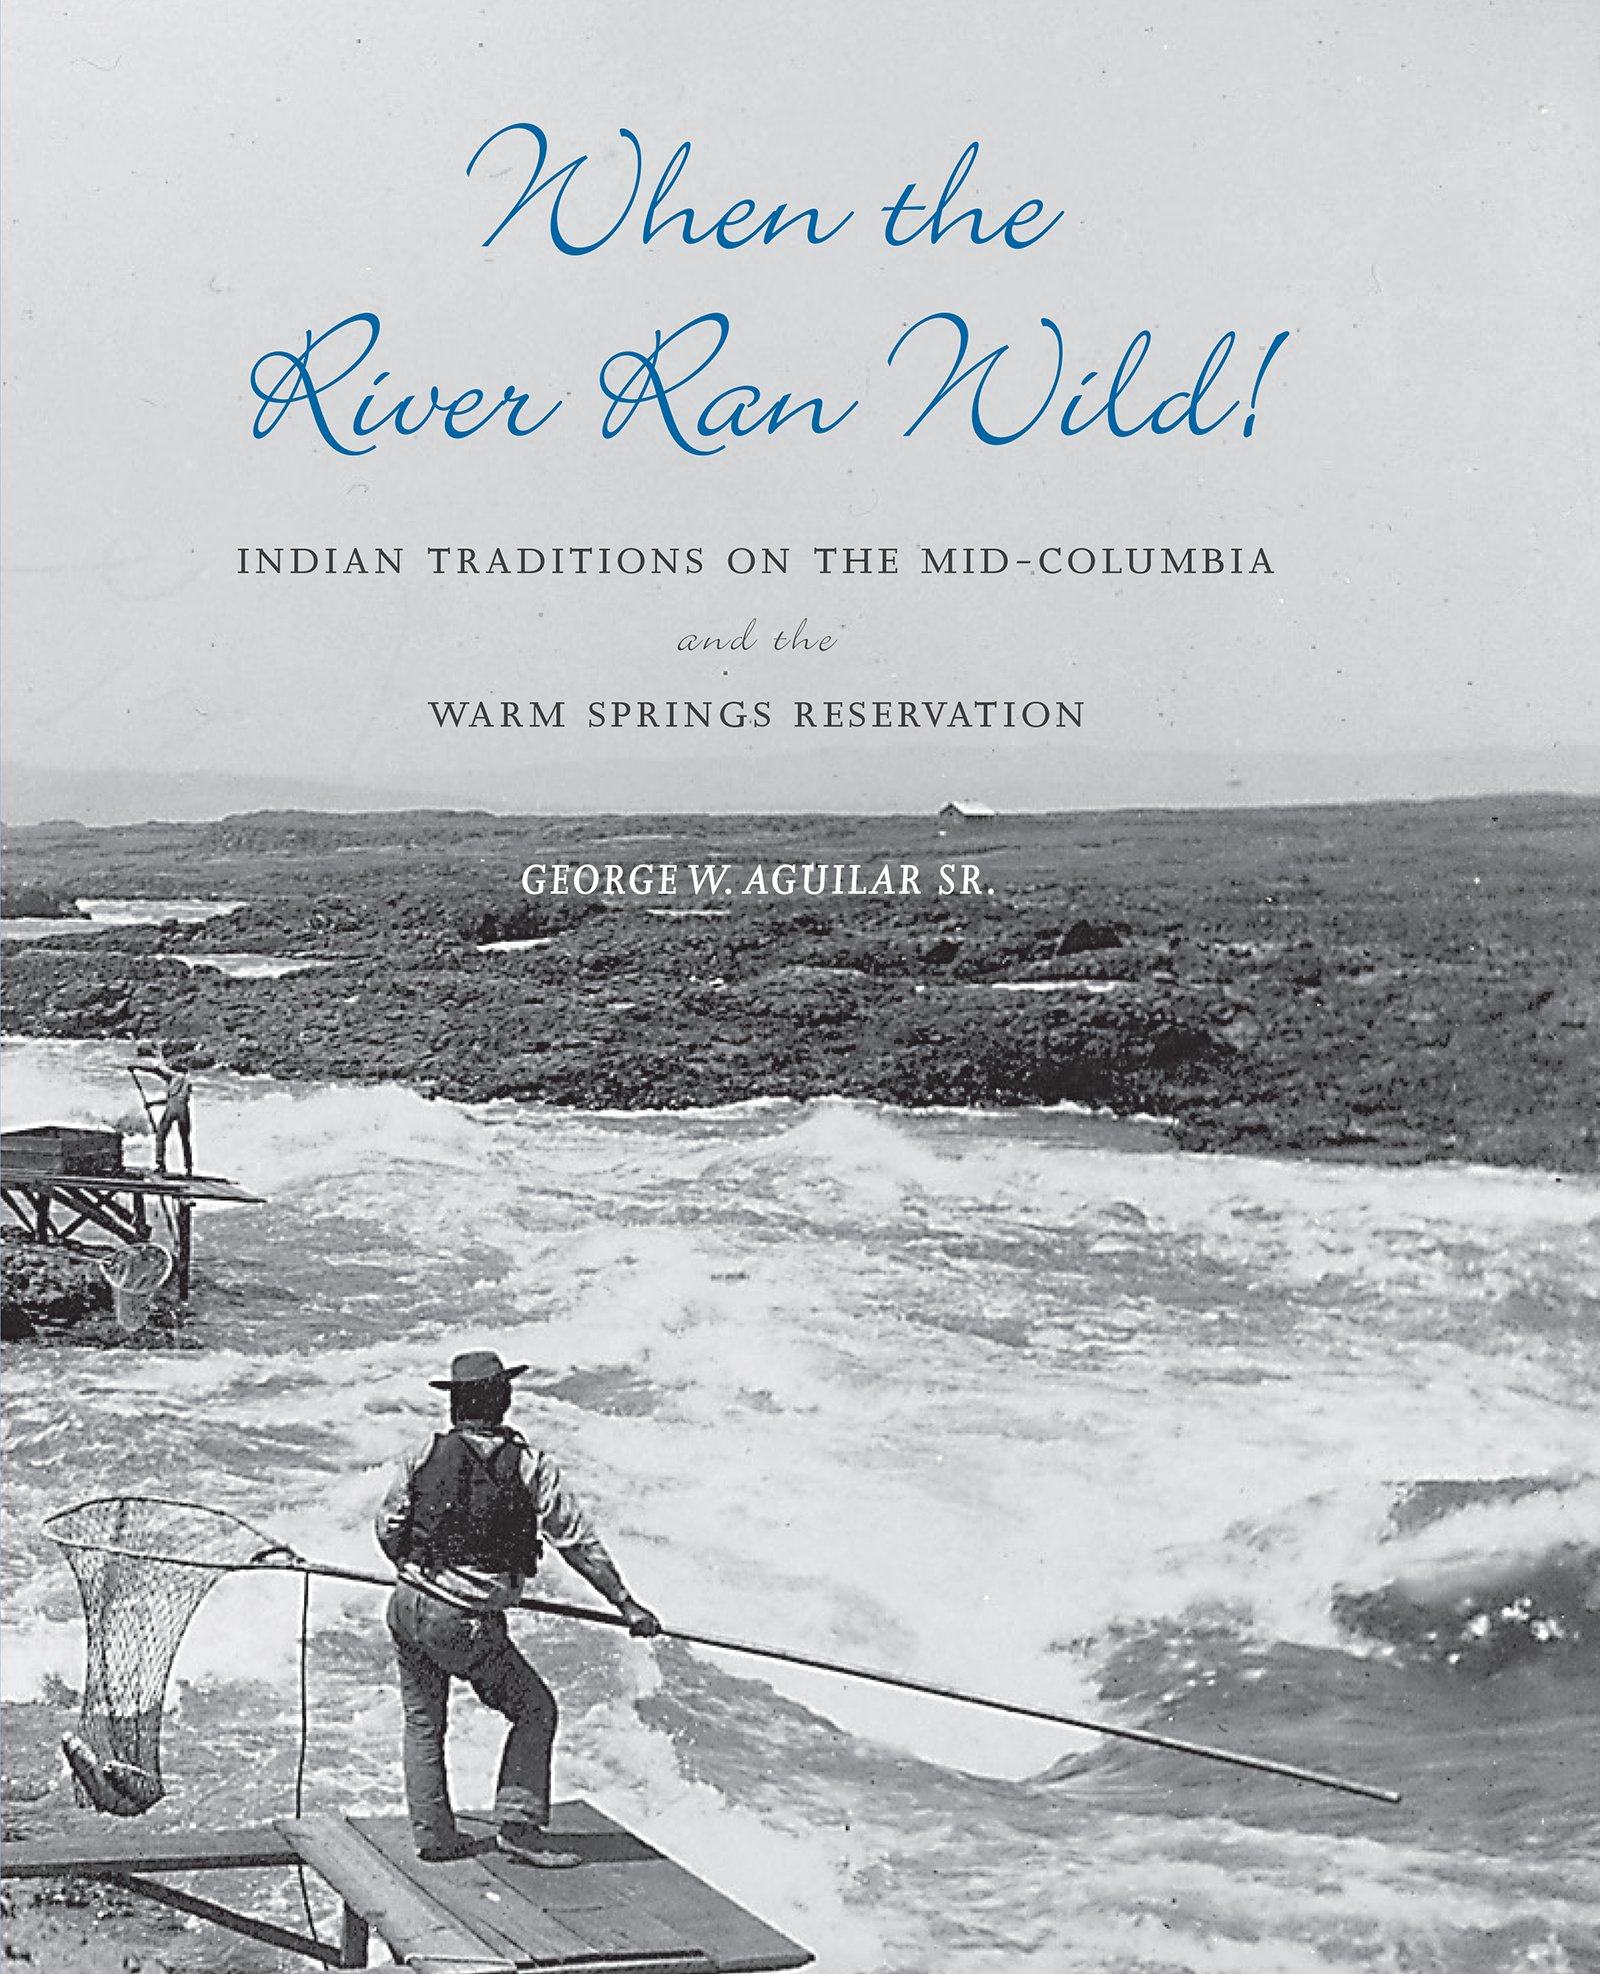 Download When the River Ran Wild! Indian Traditions on the Mid-Columbia and the Warm Springs Reservation pdf epub